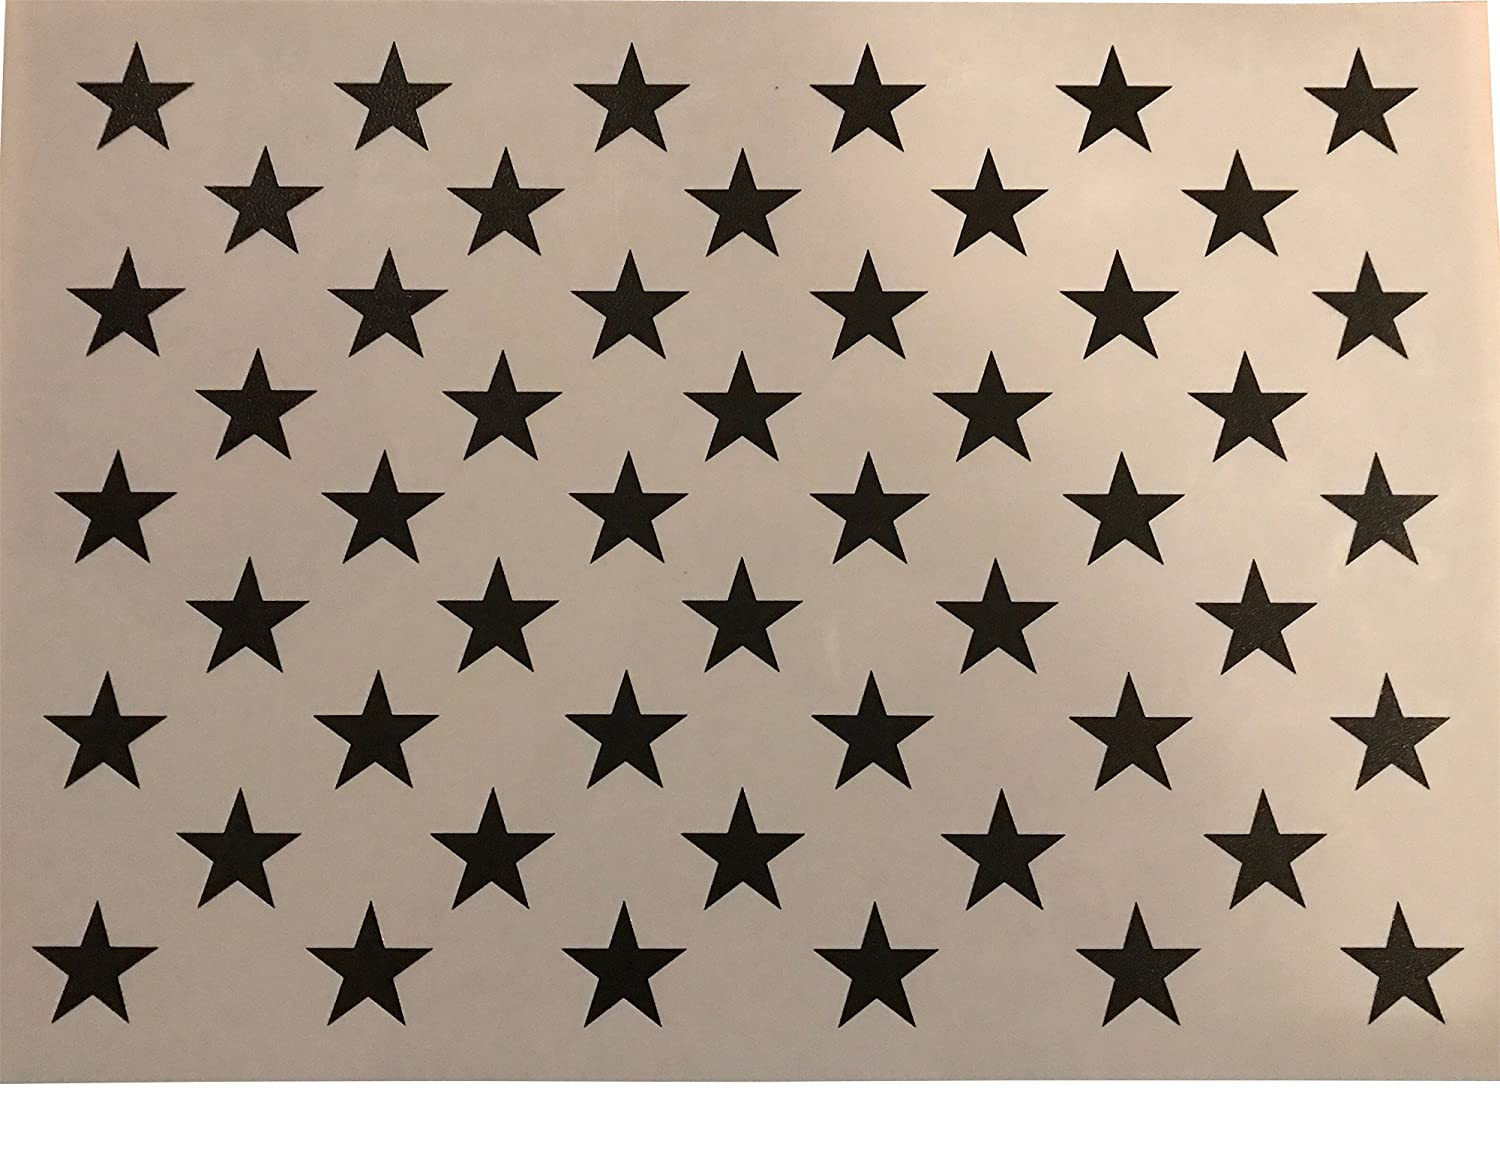 graphic regarding 50 Star Stencil Printable identify 50 Star Stencil Template 10.5 X 15 (real dimensions 10.5 X 14.82) for producing Picket American Flags and Wall Stencils. Built versus Thick Reusable 14mil Mylar